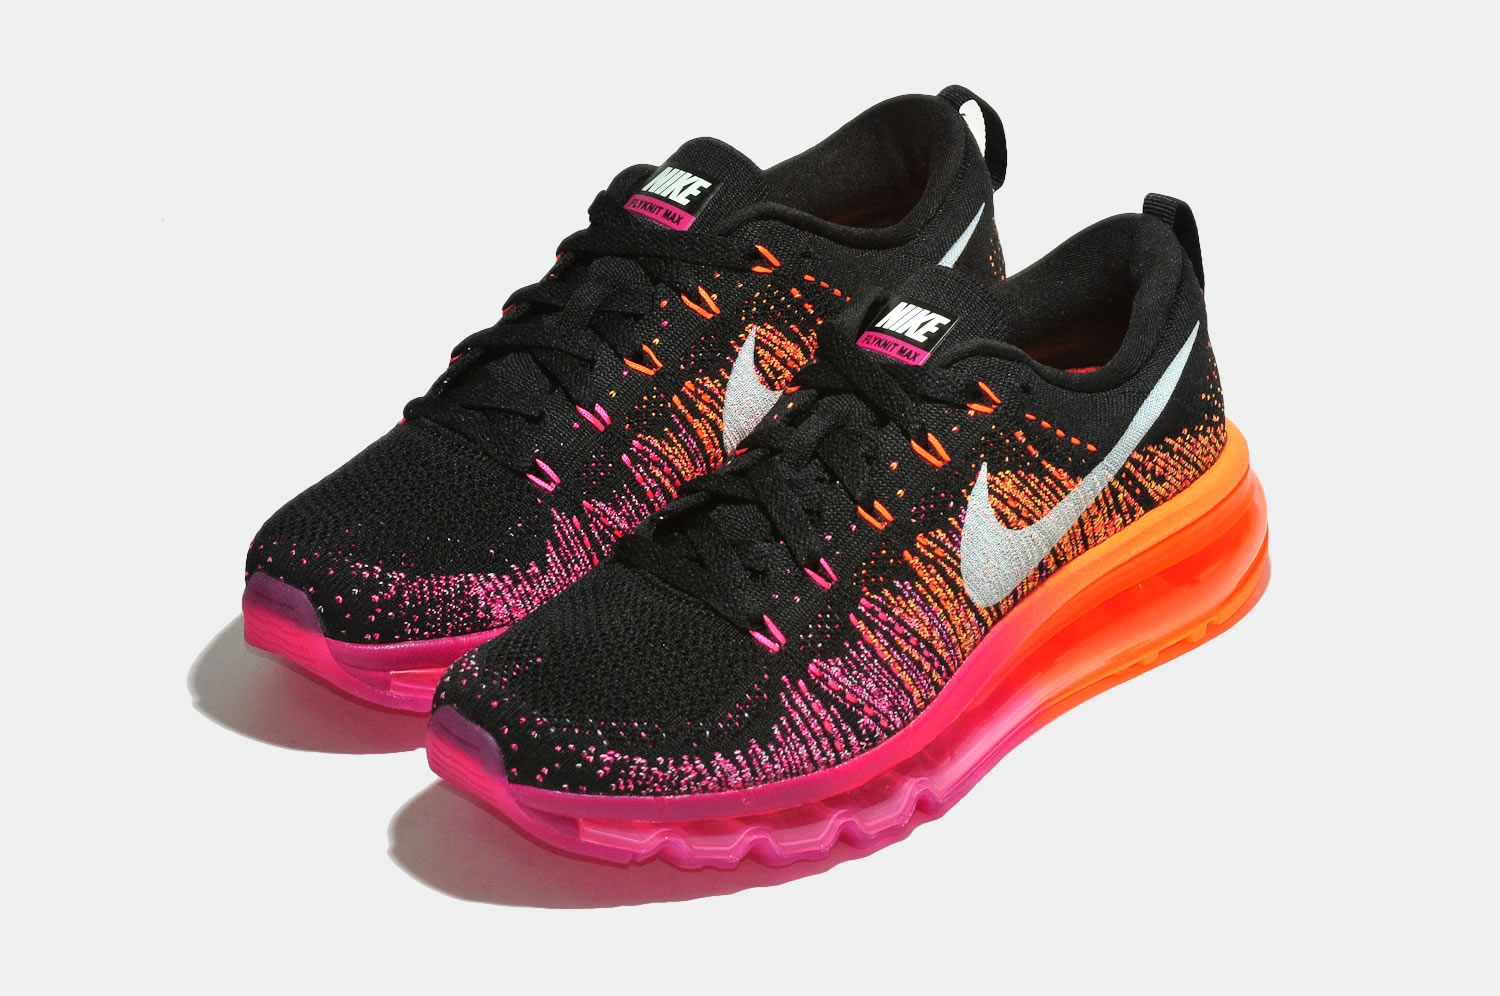 air max flyknit price in malaysia